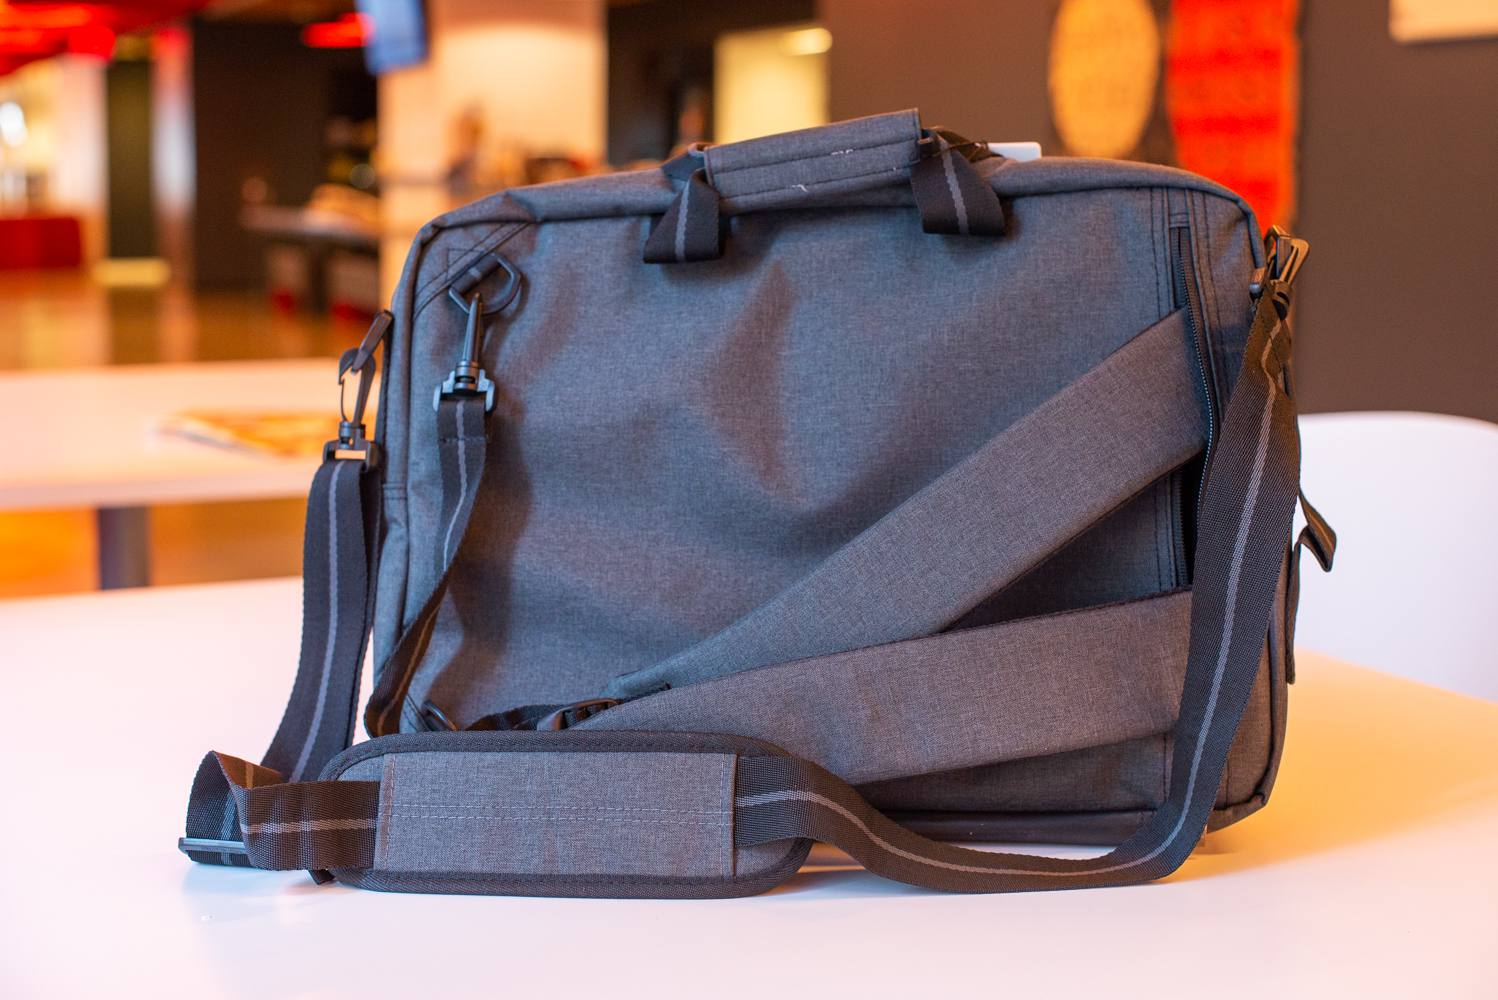 Versatility Was A Draw For Our Testers With This Lightweight Laptop Bag Specifically The Ability To Stow Away Straps When You Re Not Using Them